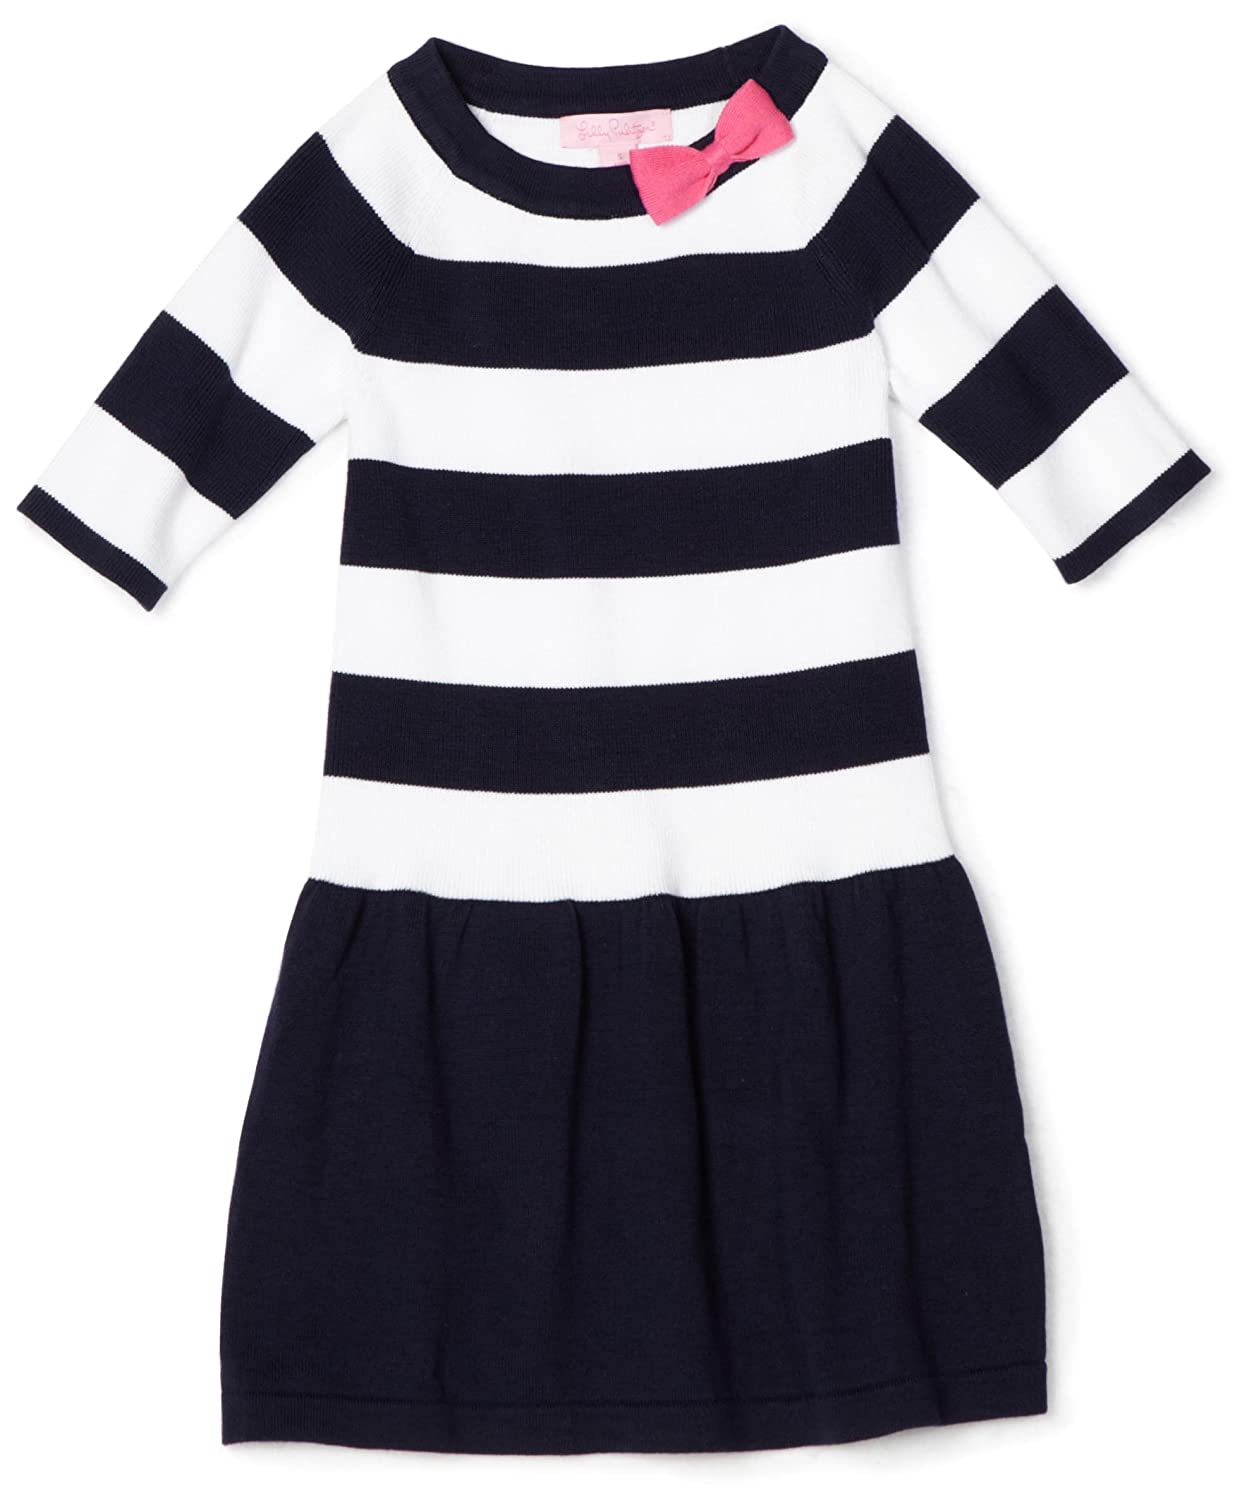 Cute Sweater Dresses for Girls